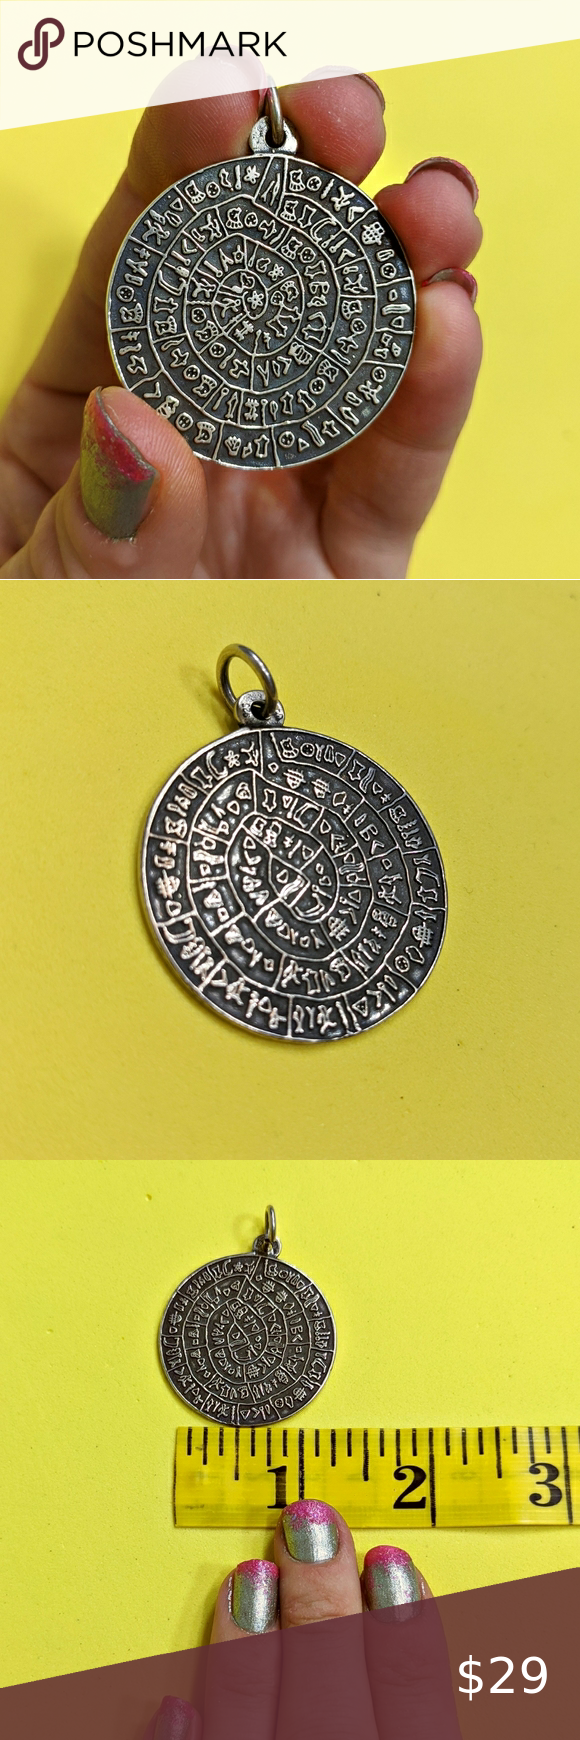 Sterling Pictograph Cave Writing Stamp Pendant Sterling Silver Pictograph Cave Writing Stamped Mandala Large Circular Pendant Double sided pendant  Just pendant included...